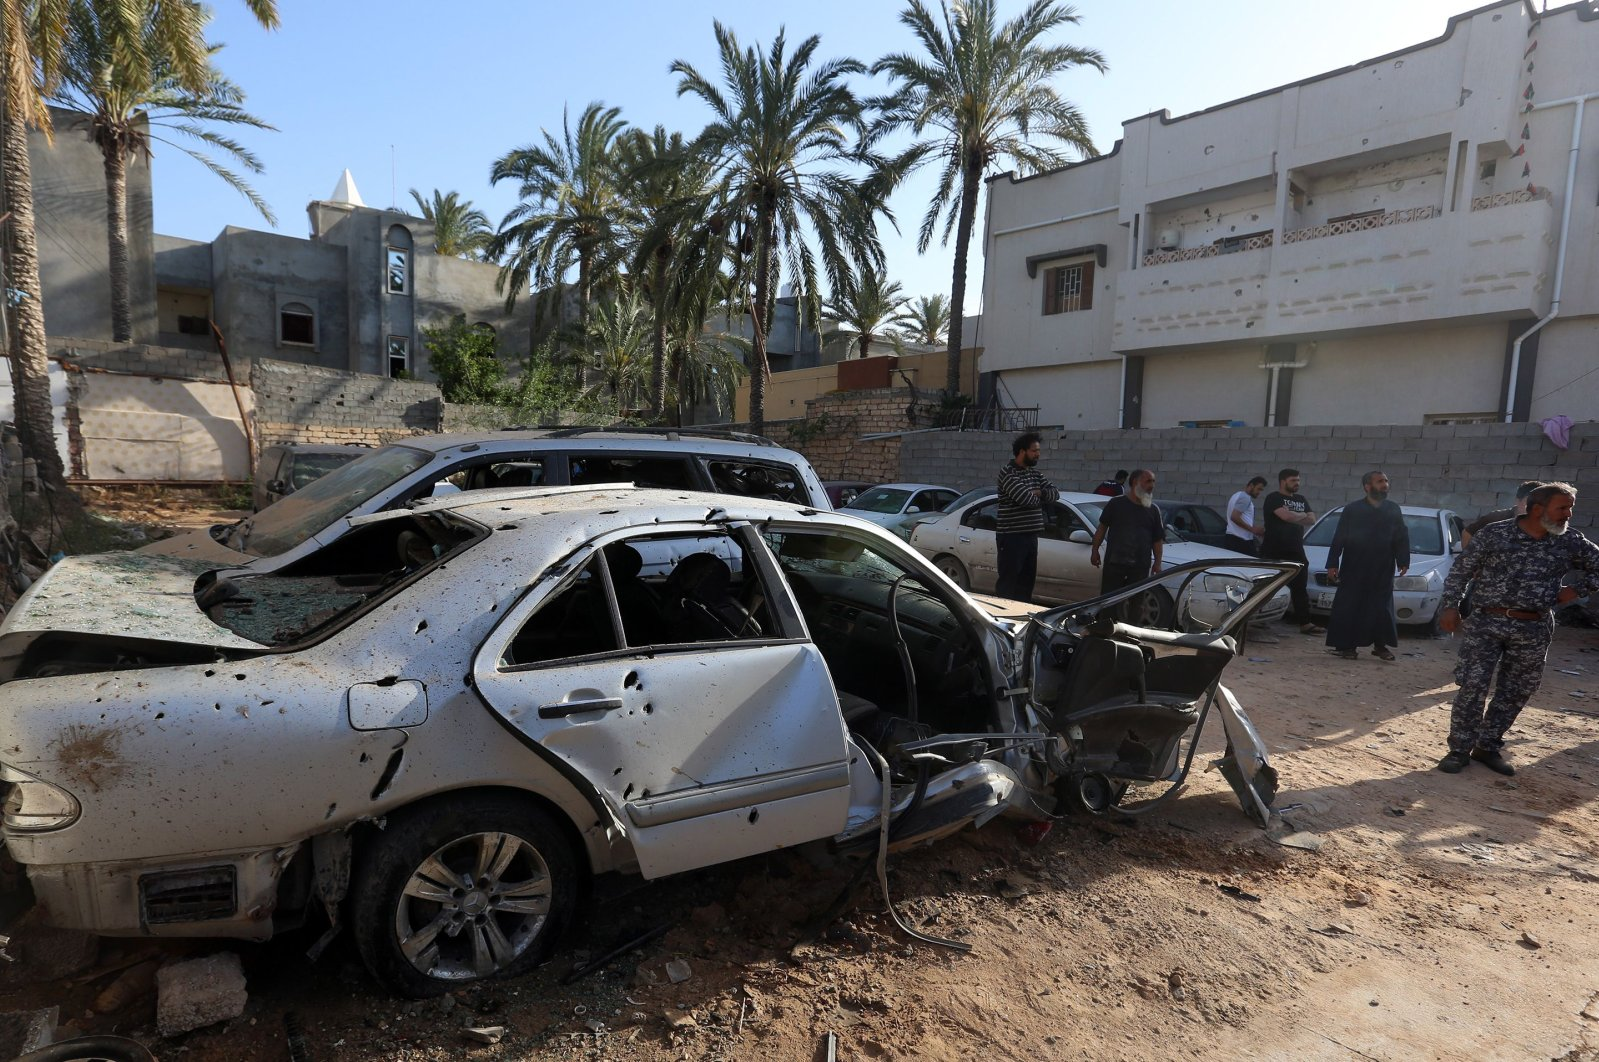 Libyans check the site of shelling on the residential area of souq al-Gomaa, north of the Libyan capital Tripoli, on April 17, 2020. (AFP Photo)